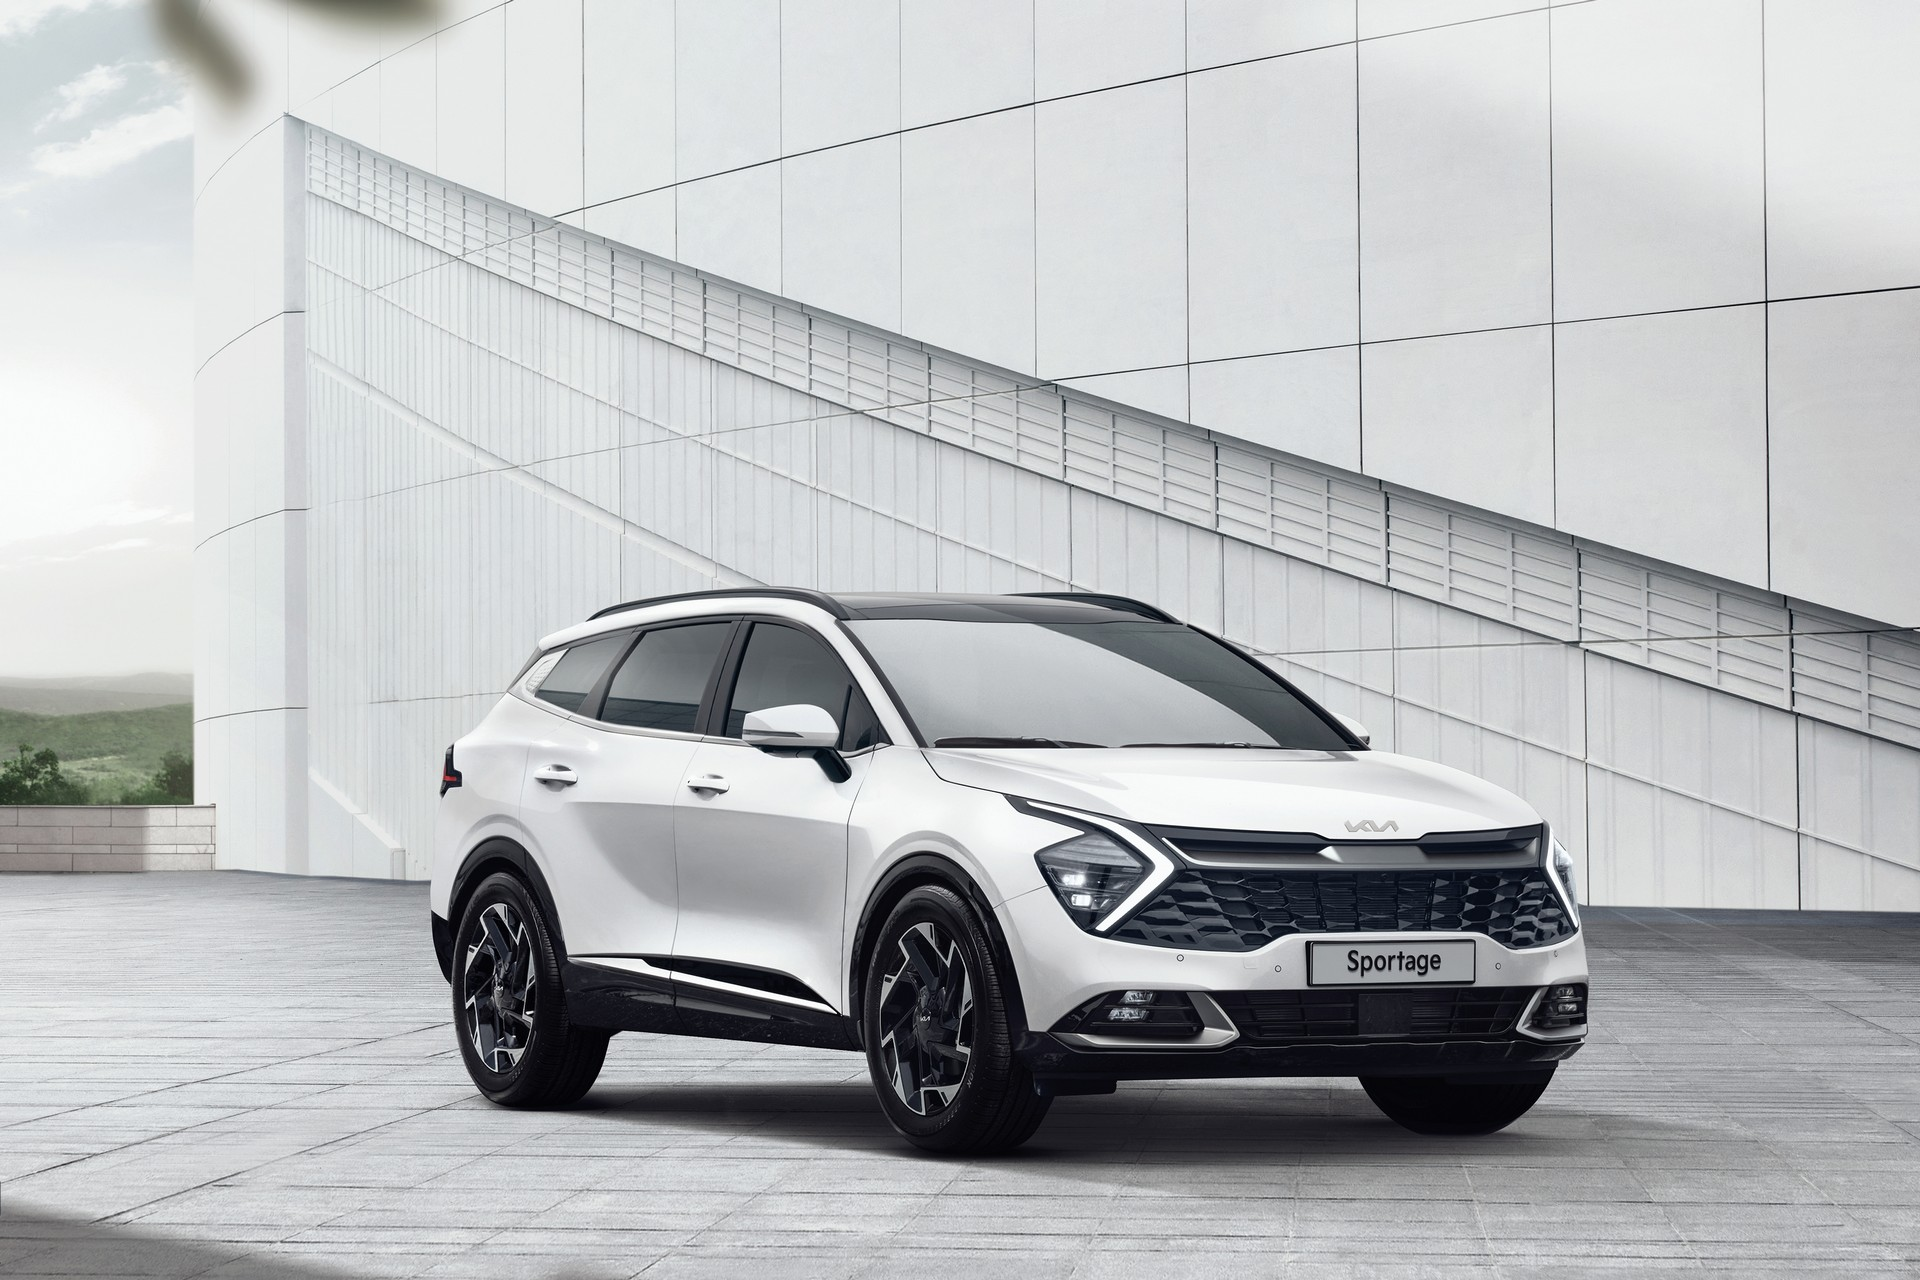 The KIA Sportage 5th Generation Has Been Revealed & it's Really Stunning